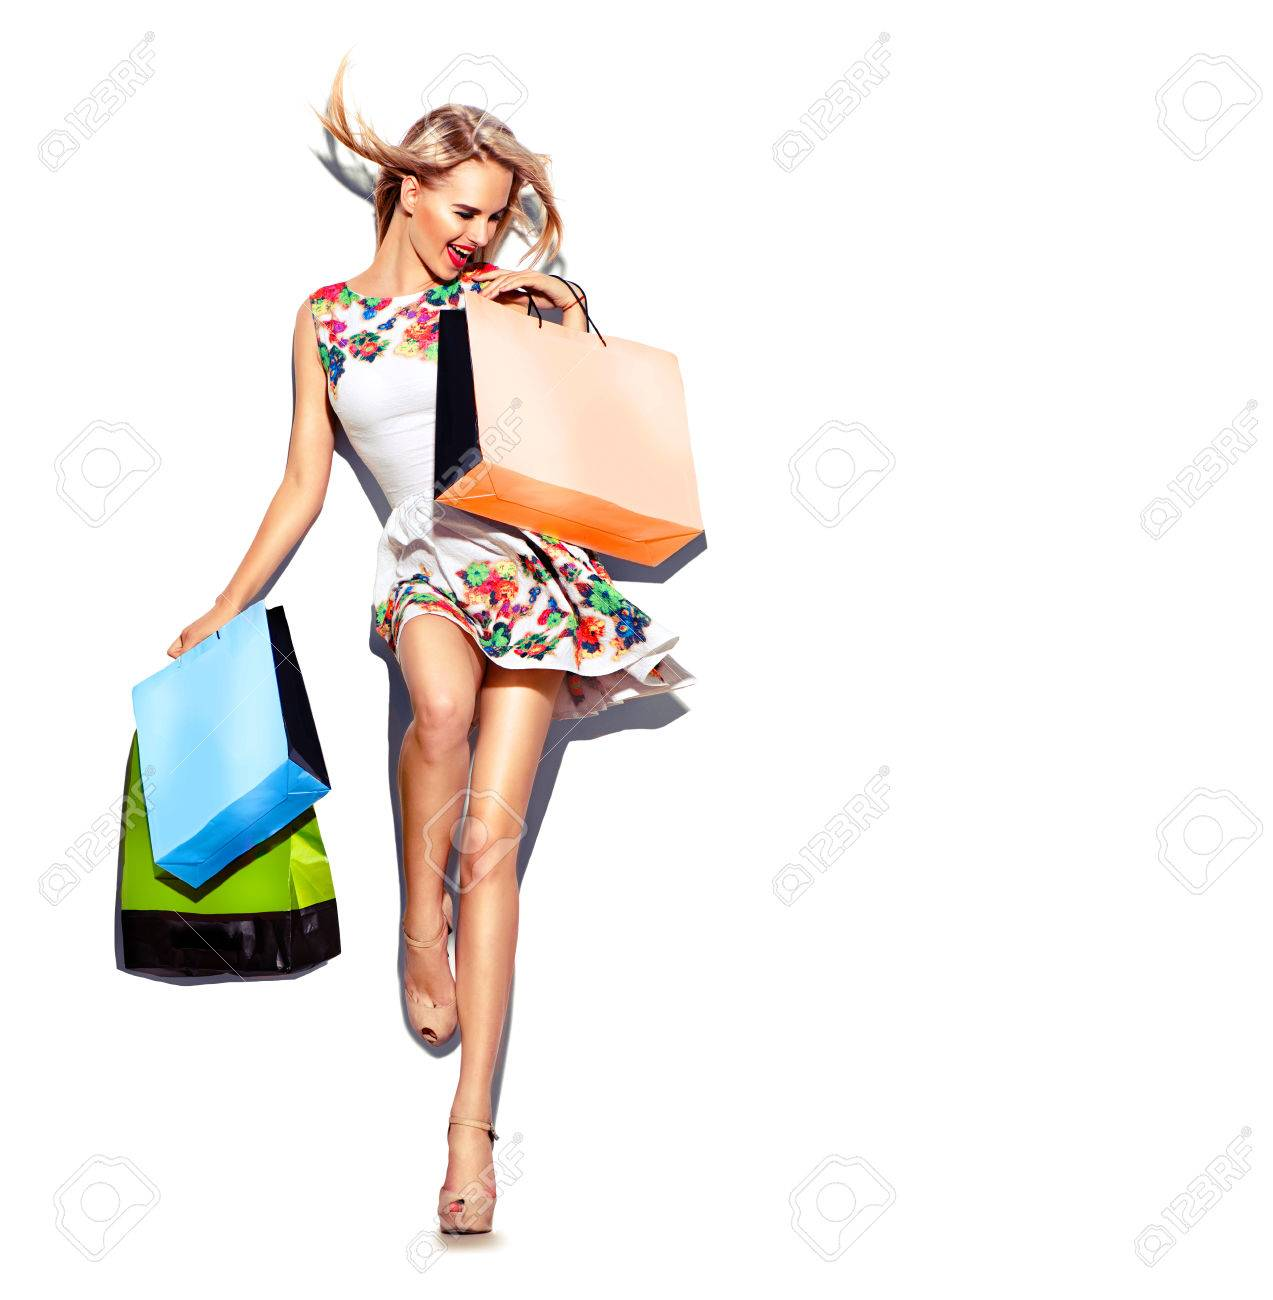 Beauty woman with shopping bags in short white dress. Shopping - 55256203